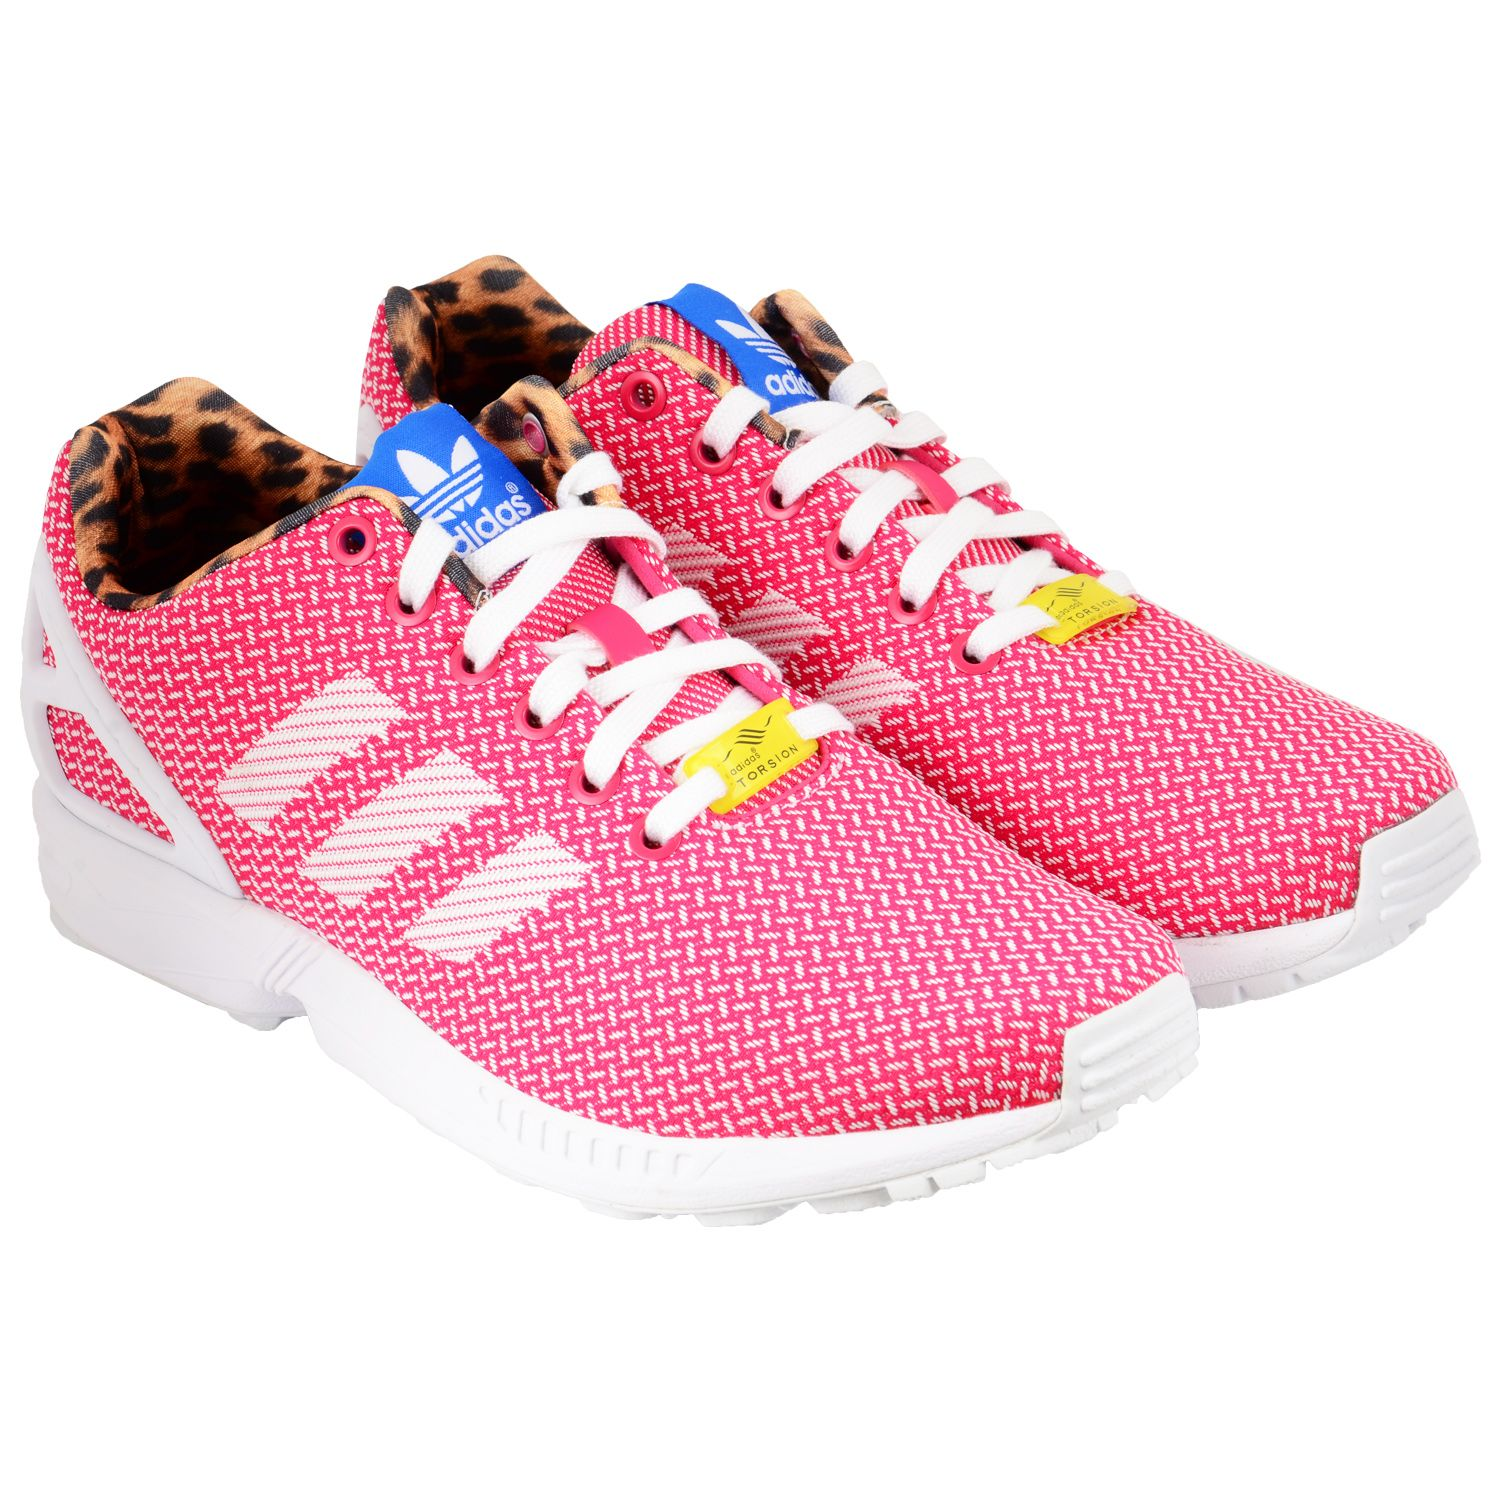 on sale 124aa 0bb60 ... closeout adidas shoe womans zx flux weave basse chaussures rose blanc  ff67a 0c54f